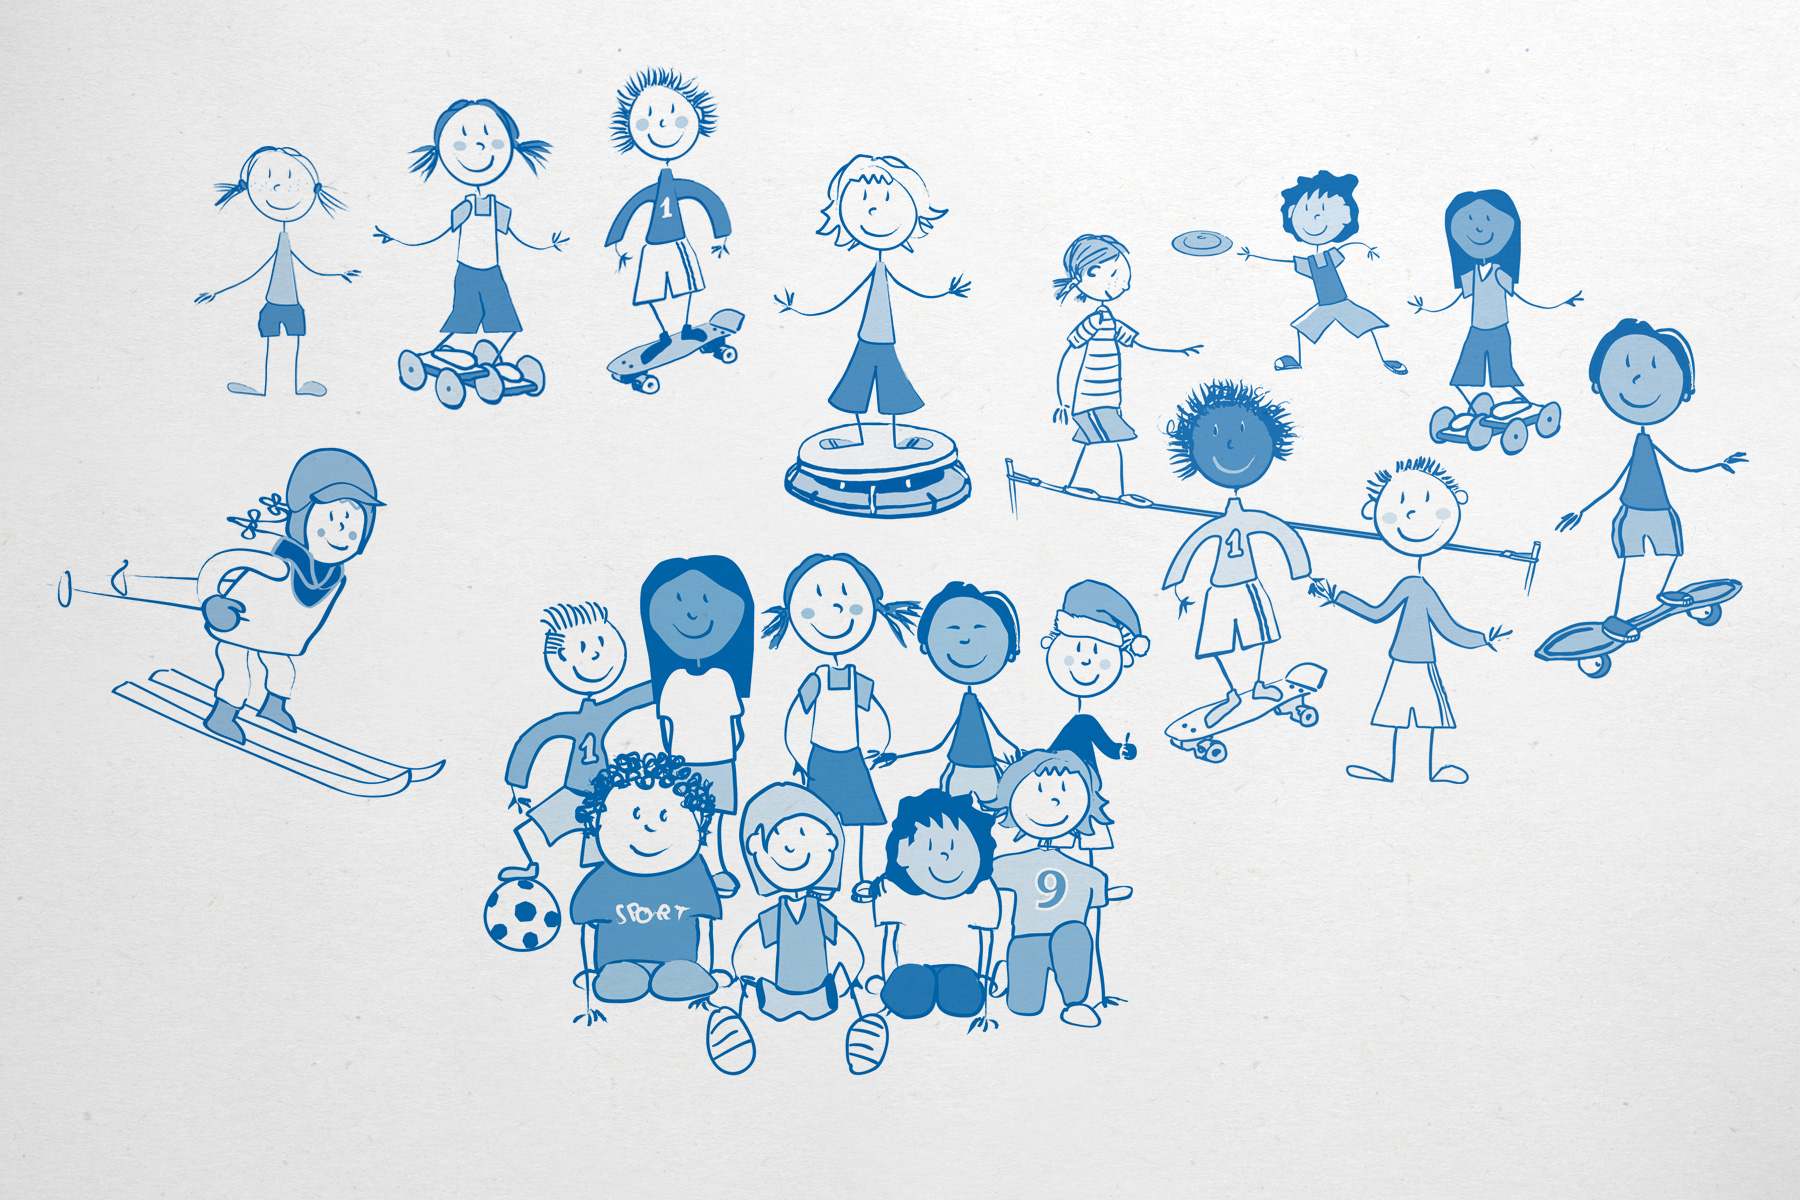 Illustrationen – Kinder-Sportangebot